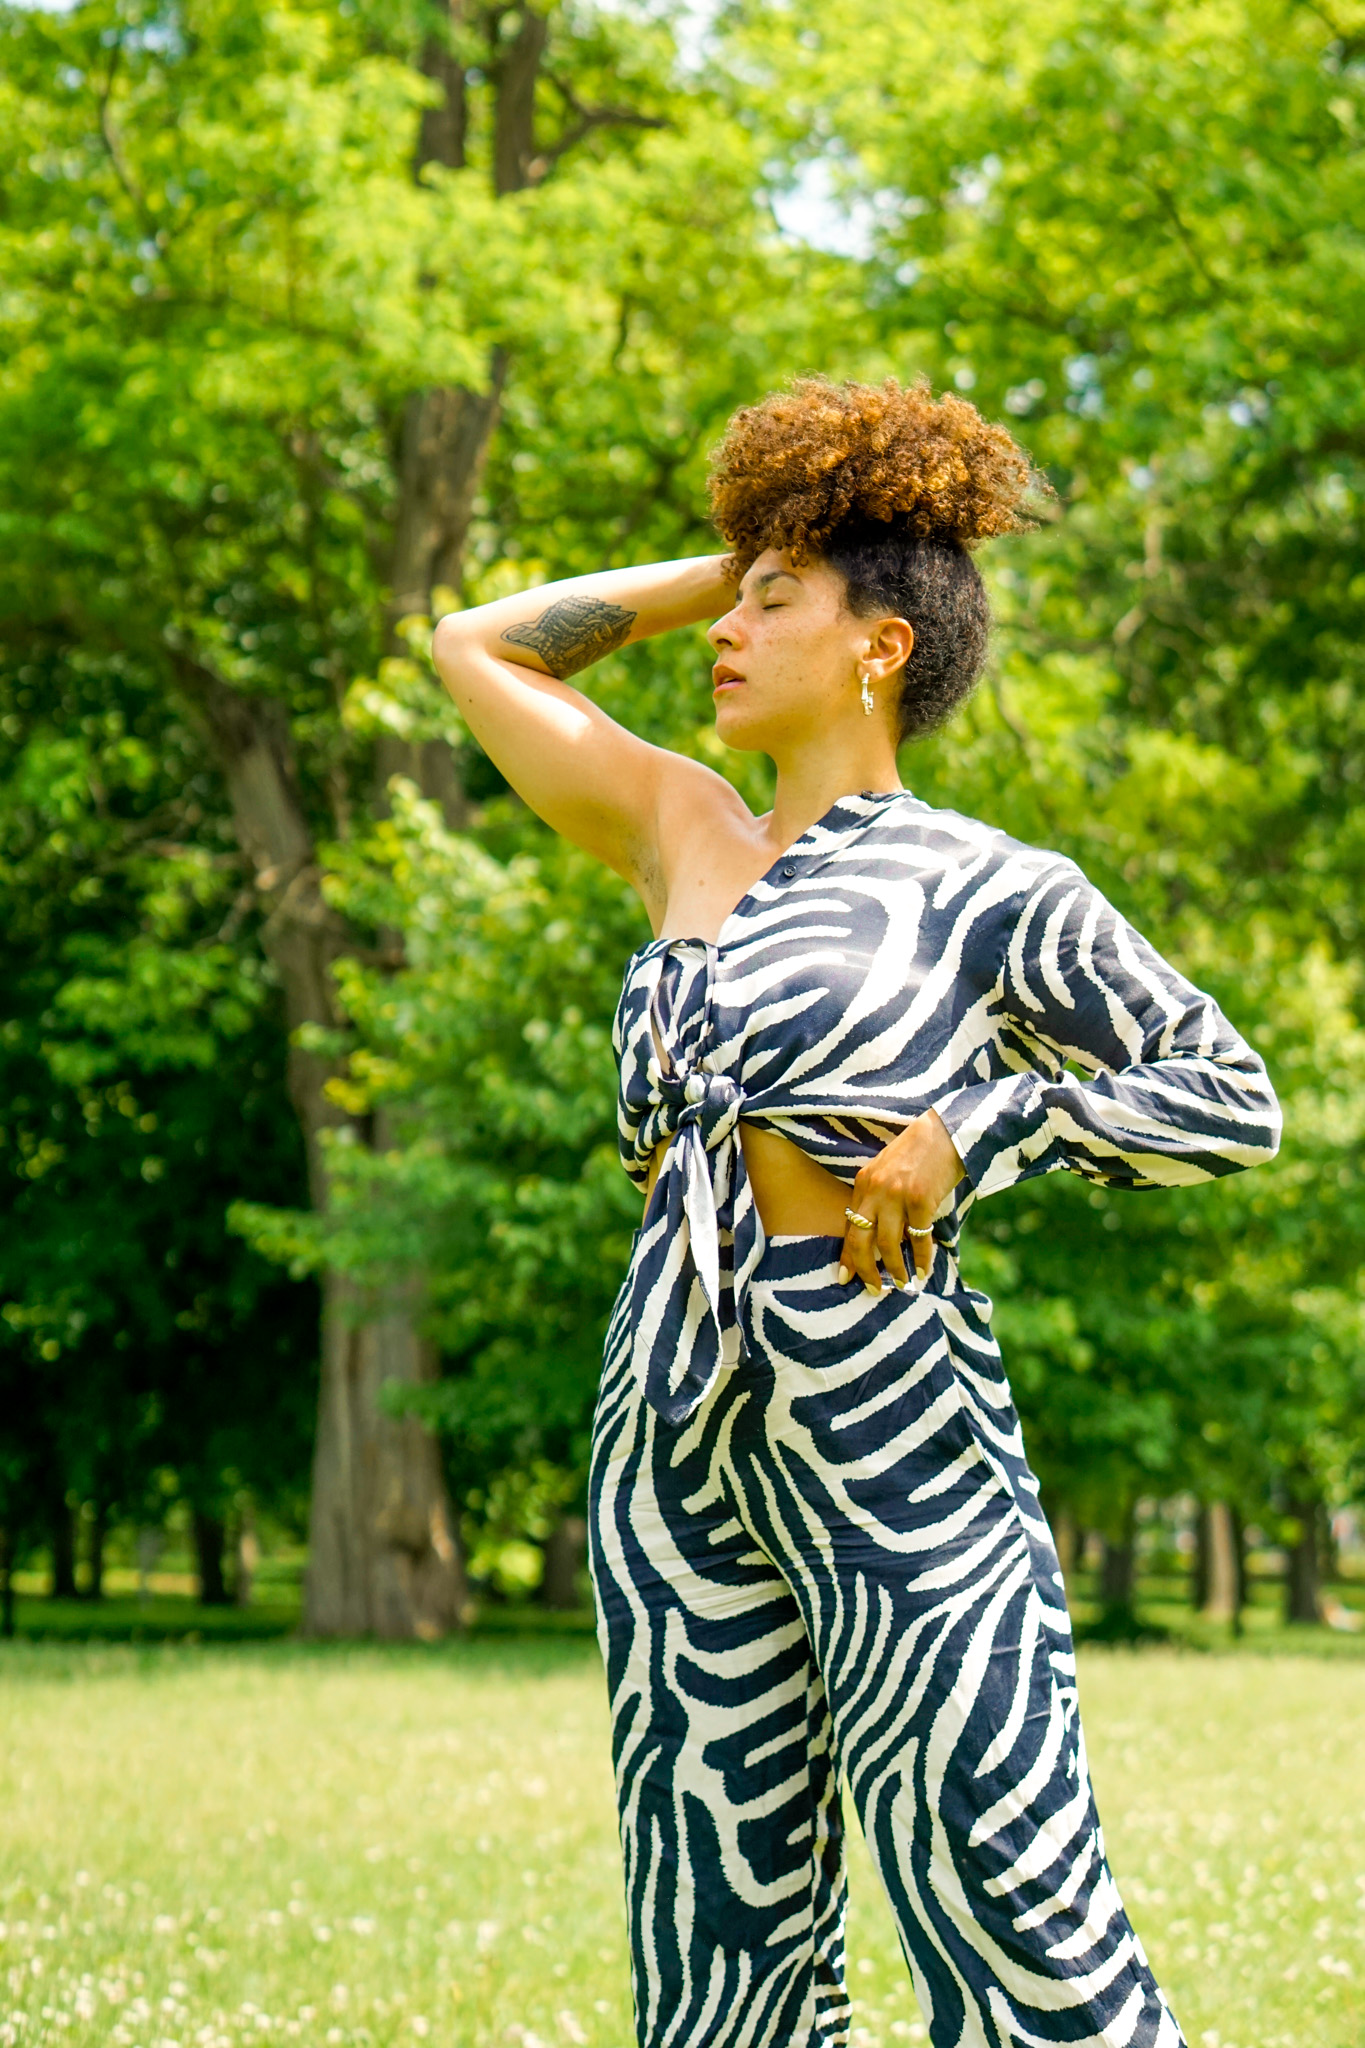 zebra matching set outfit idea for women, matching set summer outfit idea, matching set street style outfit, summer outfit black girl